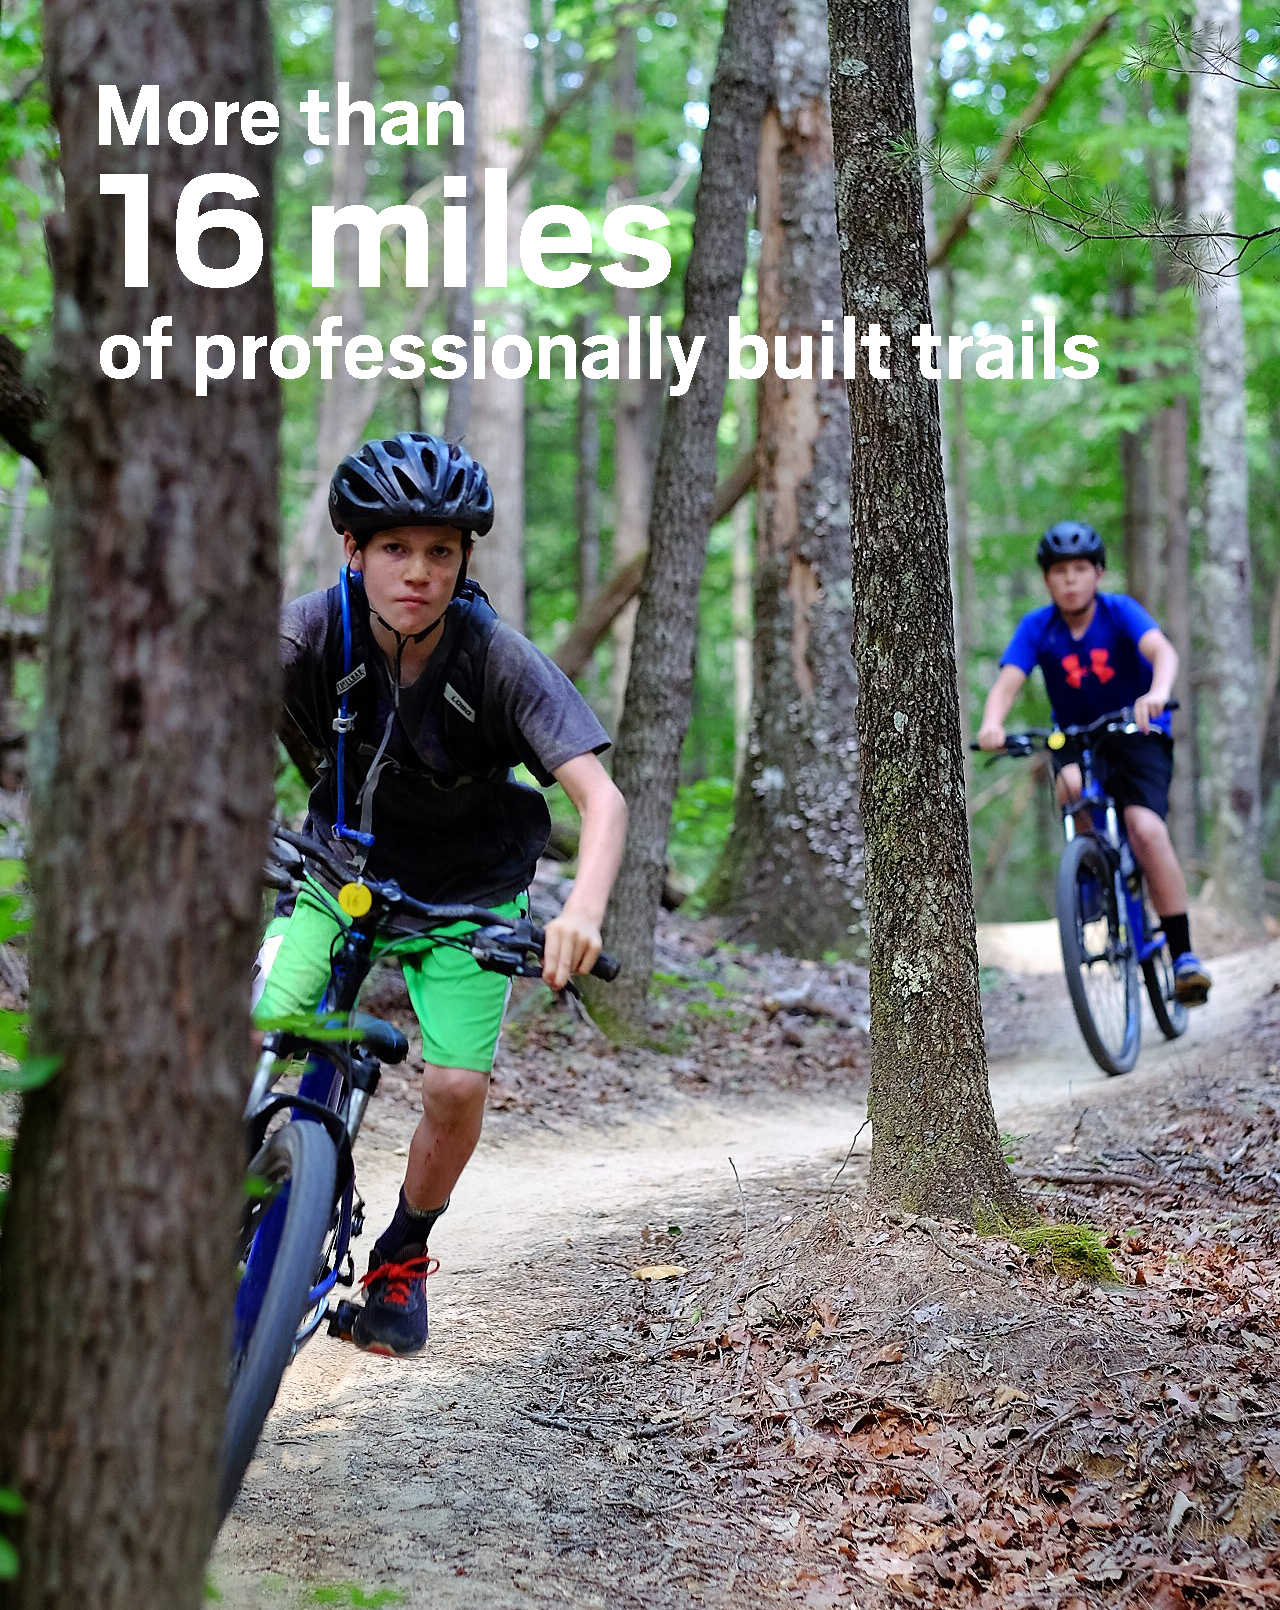 Campers can mountain bike, backpack, run and hike on our professionally built trails.